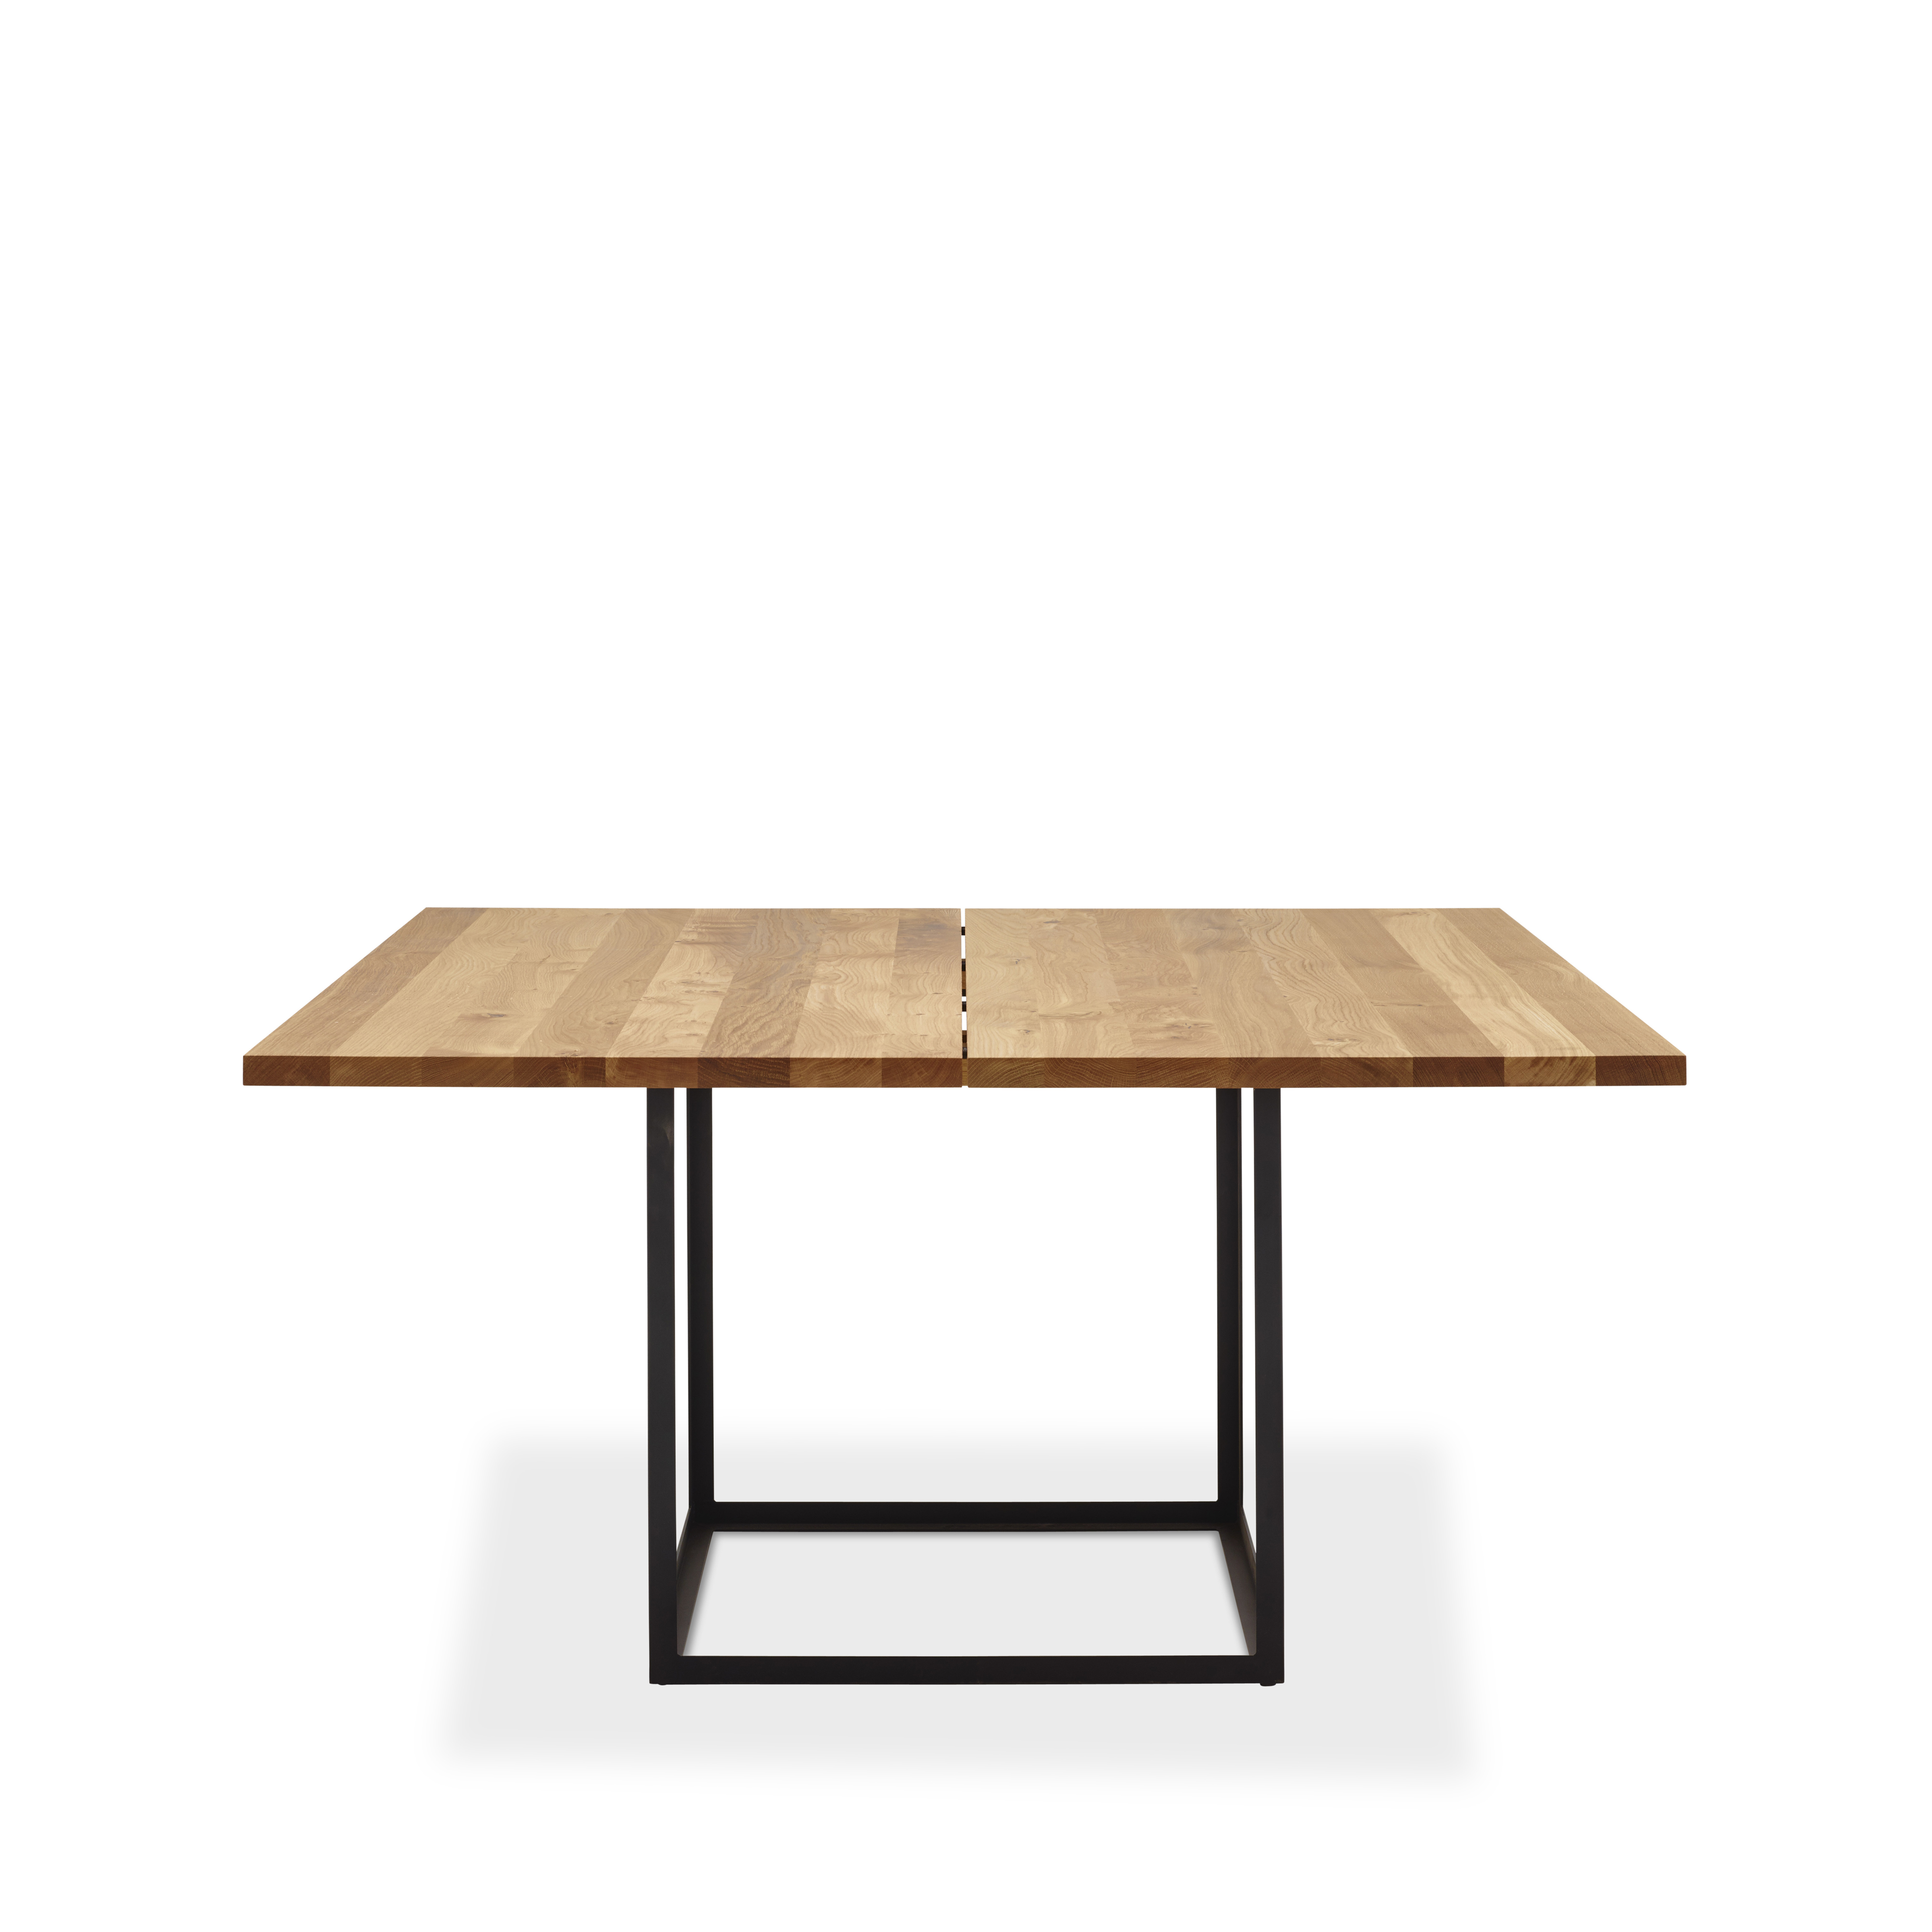 Bild av Jewel Table matbord - oljad ek, svart, 160x160 cm